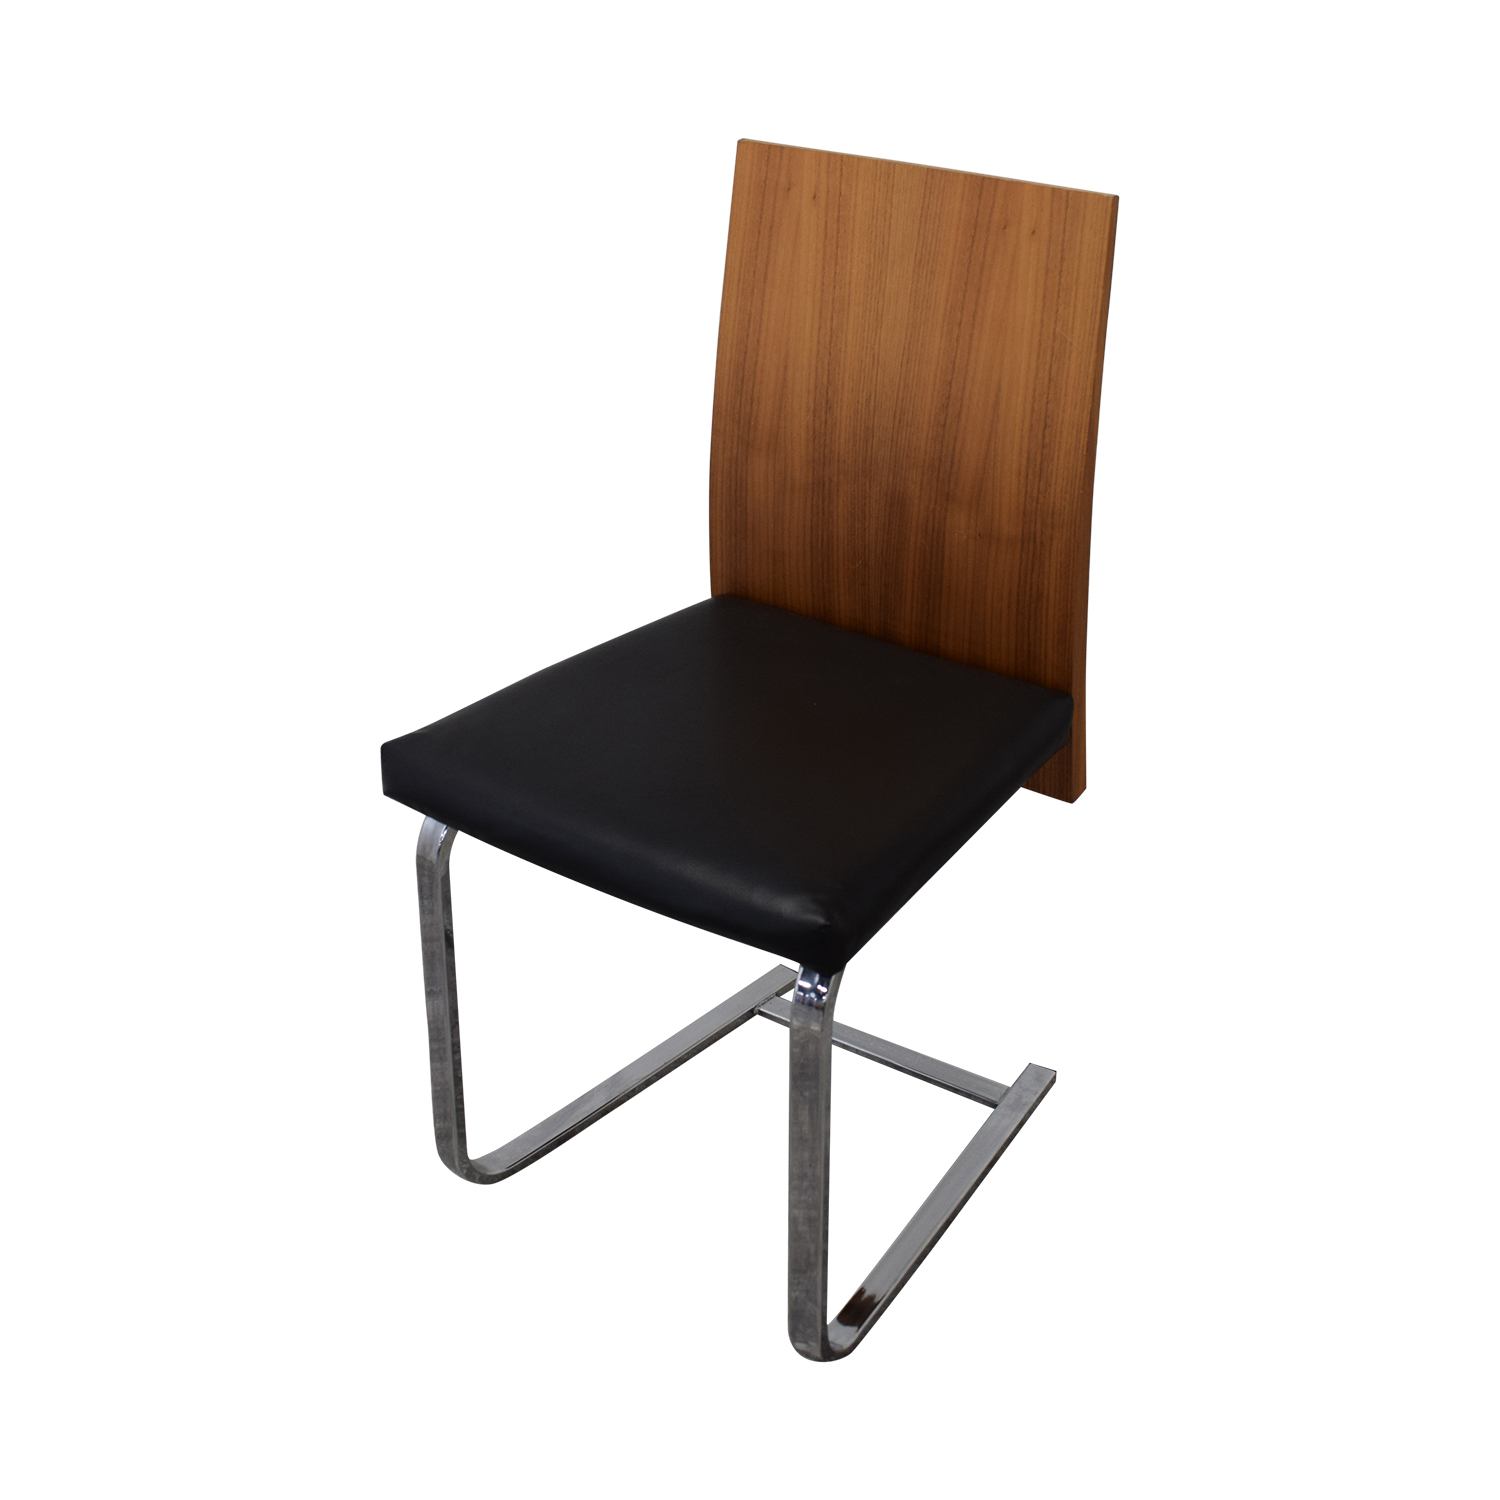 shop Domitalia Jeff-sl Chrome Black Leather and Wood Dining Chairs Domitalia Dining Chairs